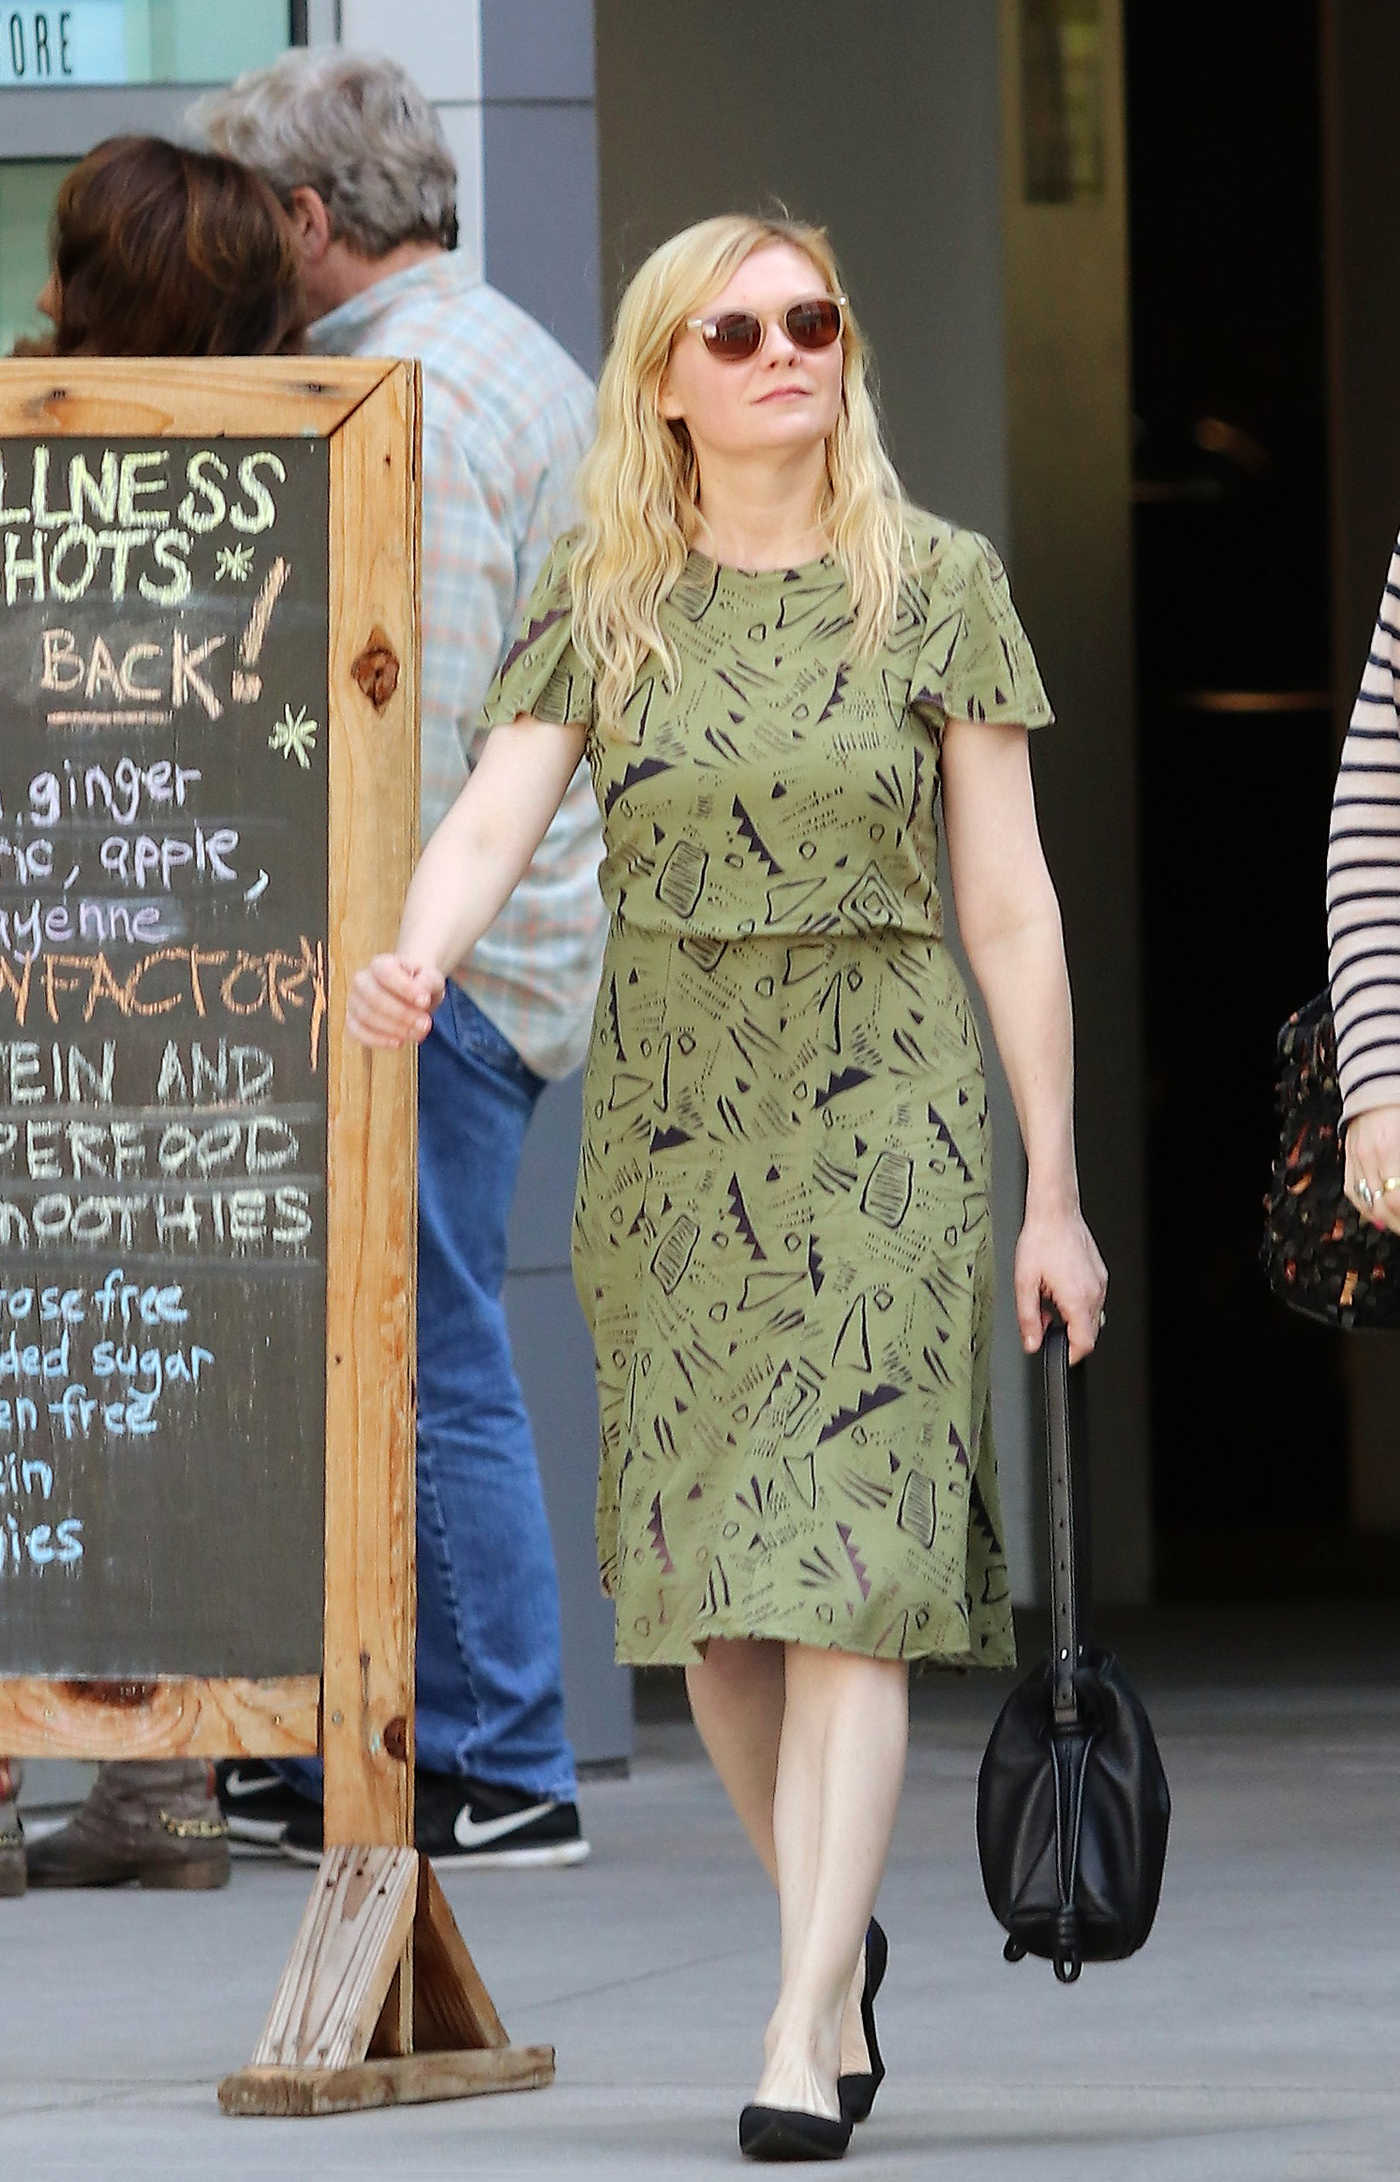 Kirsten Dunst in a Green Dress Was Seen Out with a Friend in Los Angeles 03/24/2019